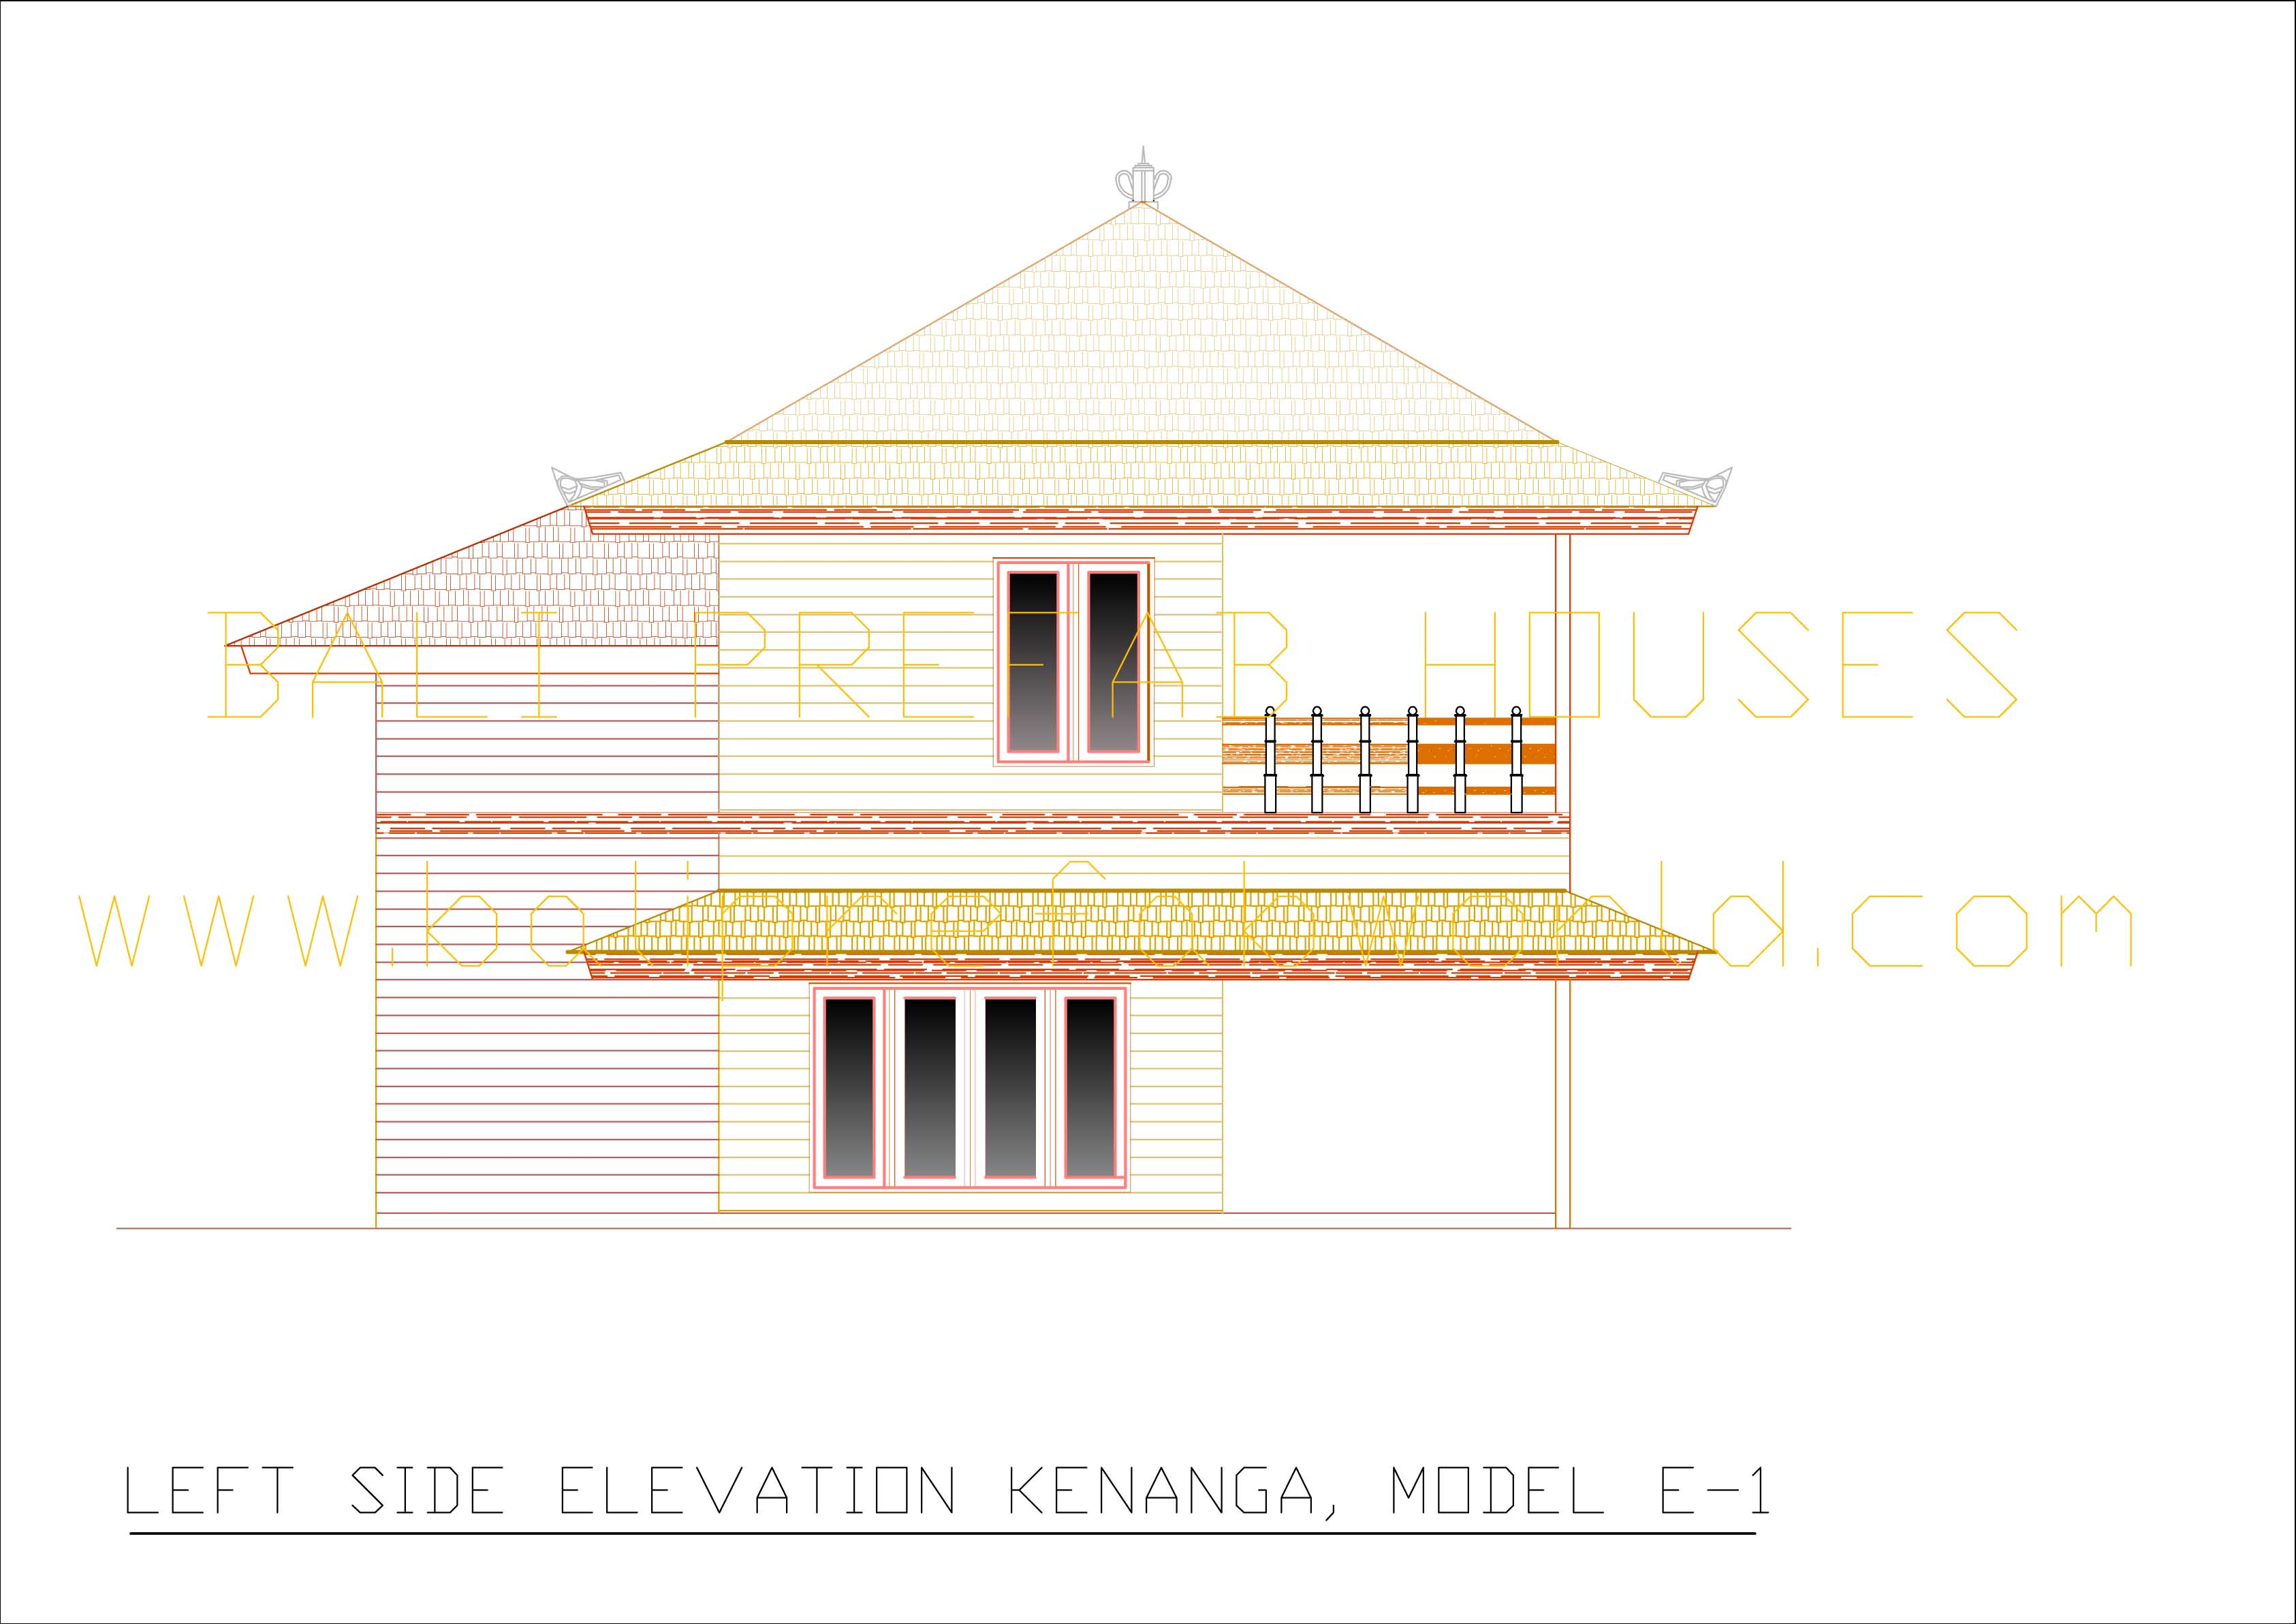 Kenanga left side elevation